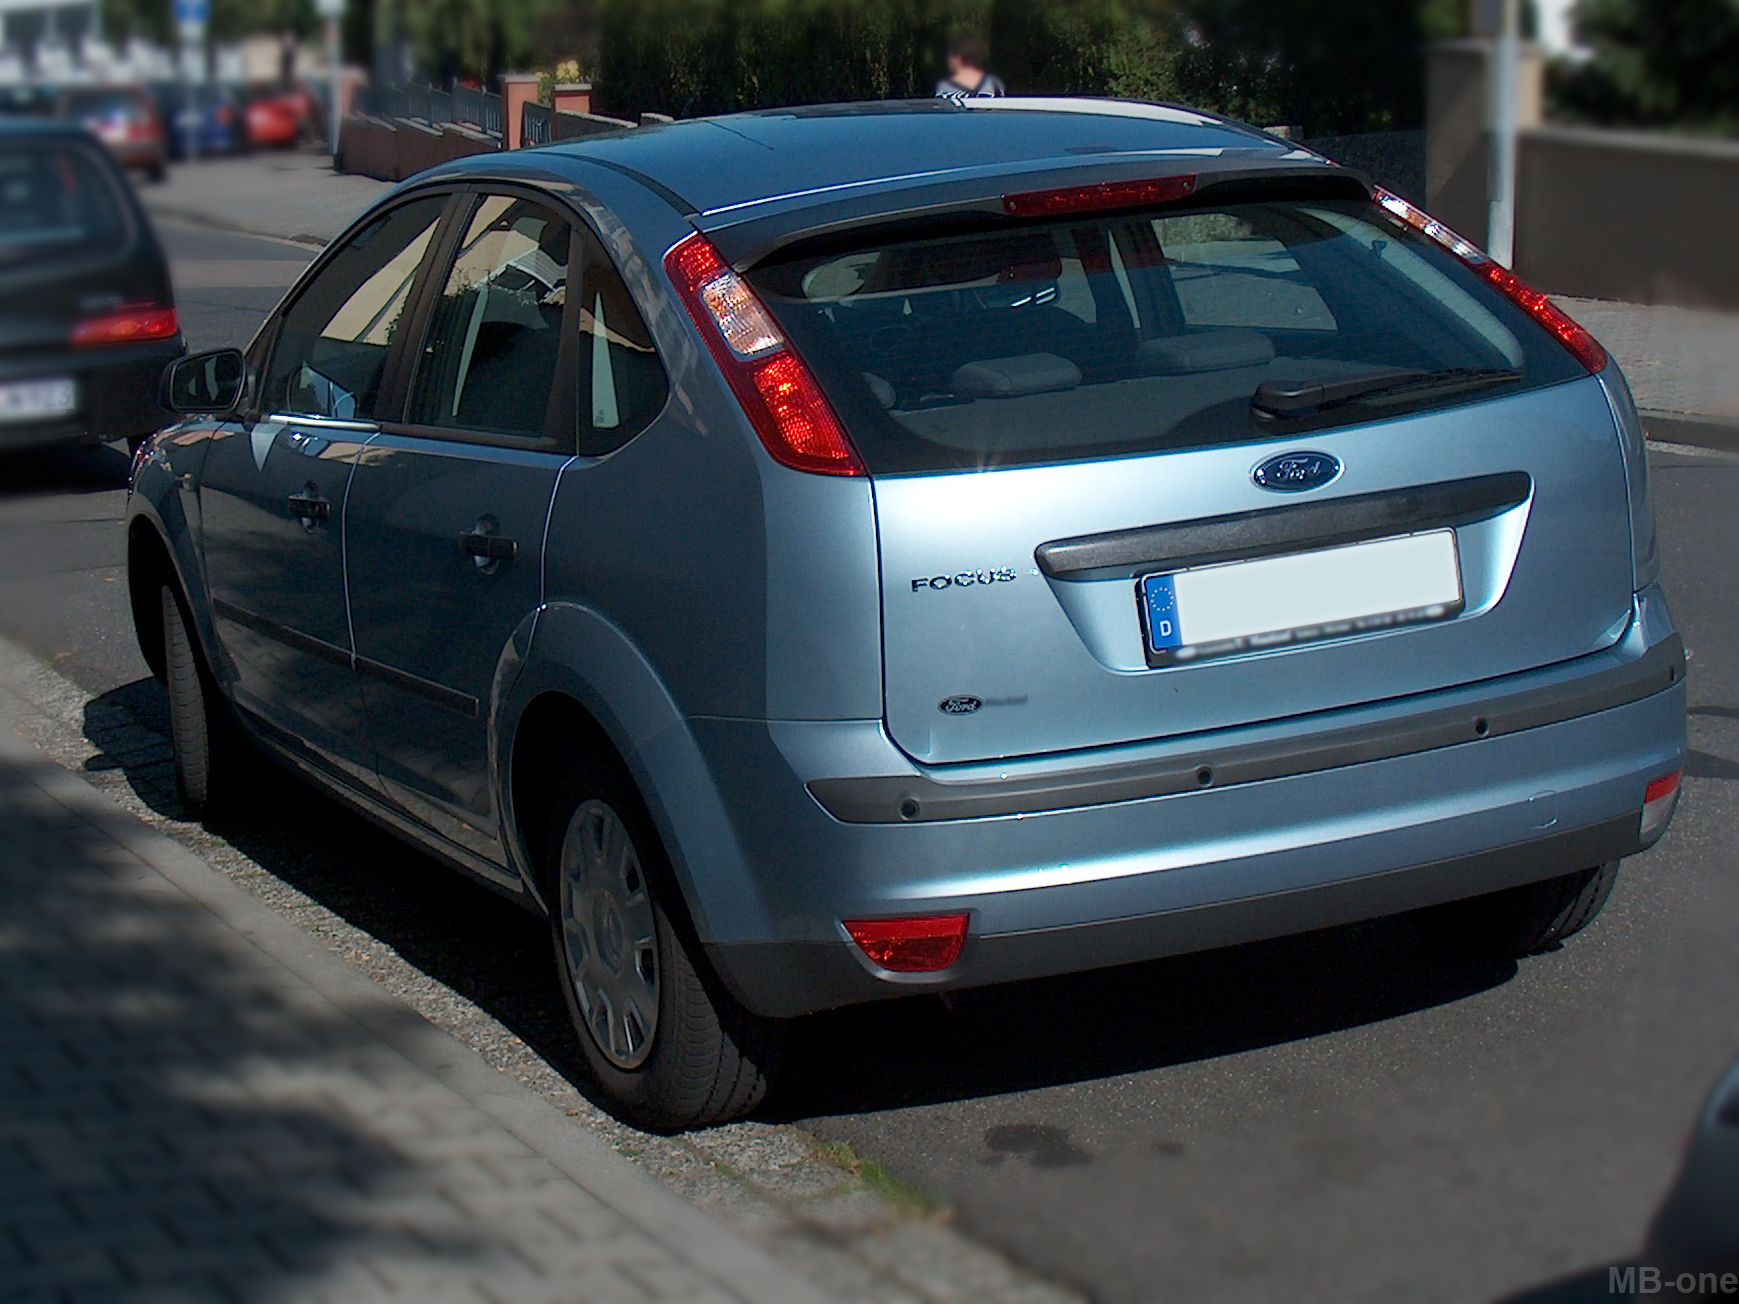 File:ford Focus Most Rear